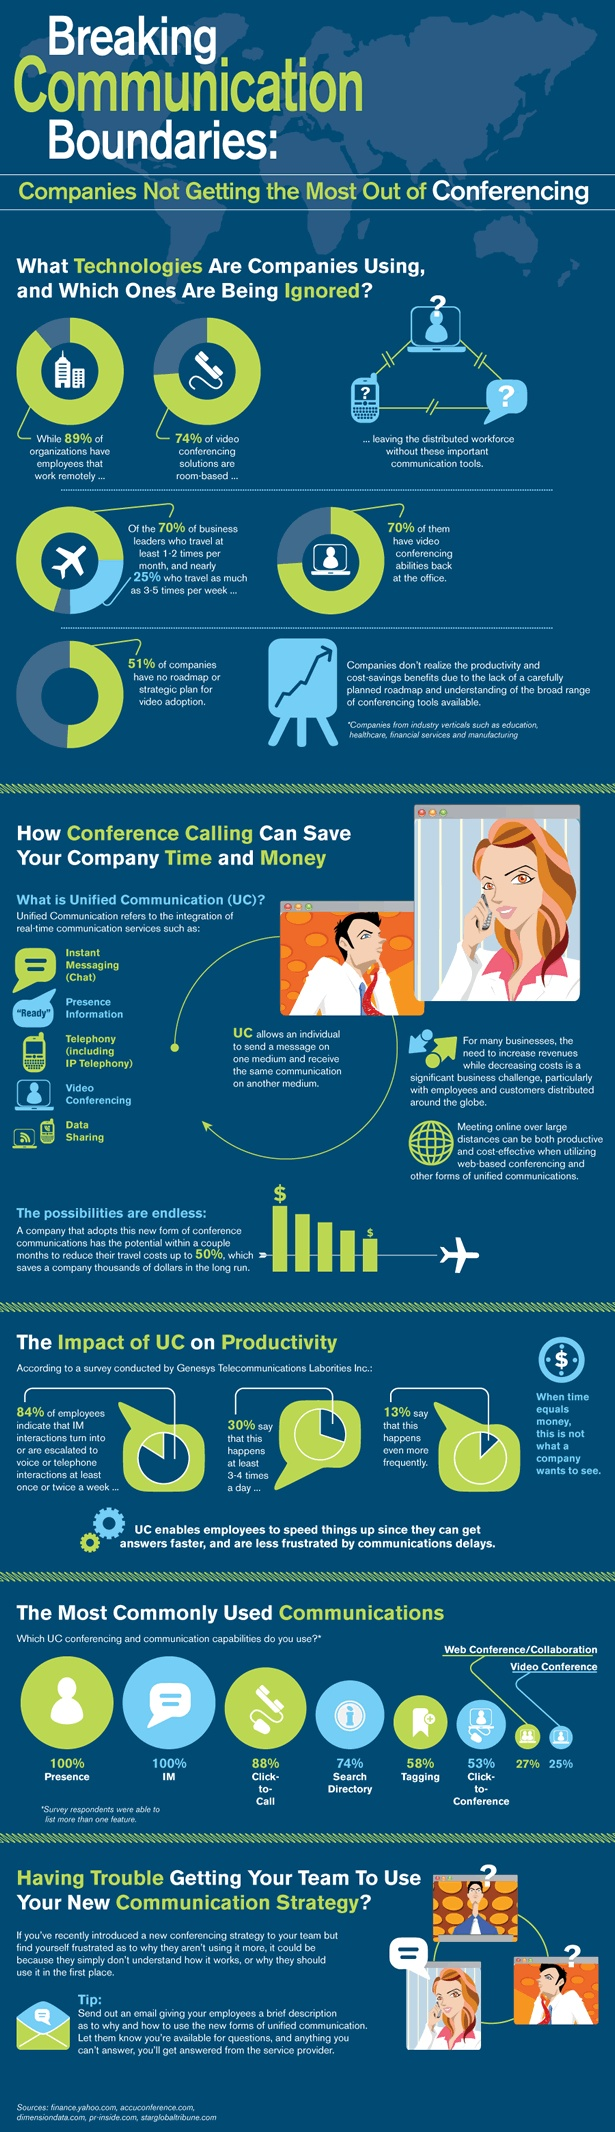 Web conferencing and Unified Communication - http://www.voicedata.com/services/UCaaS